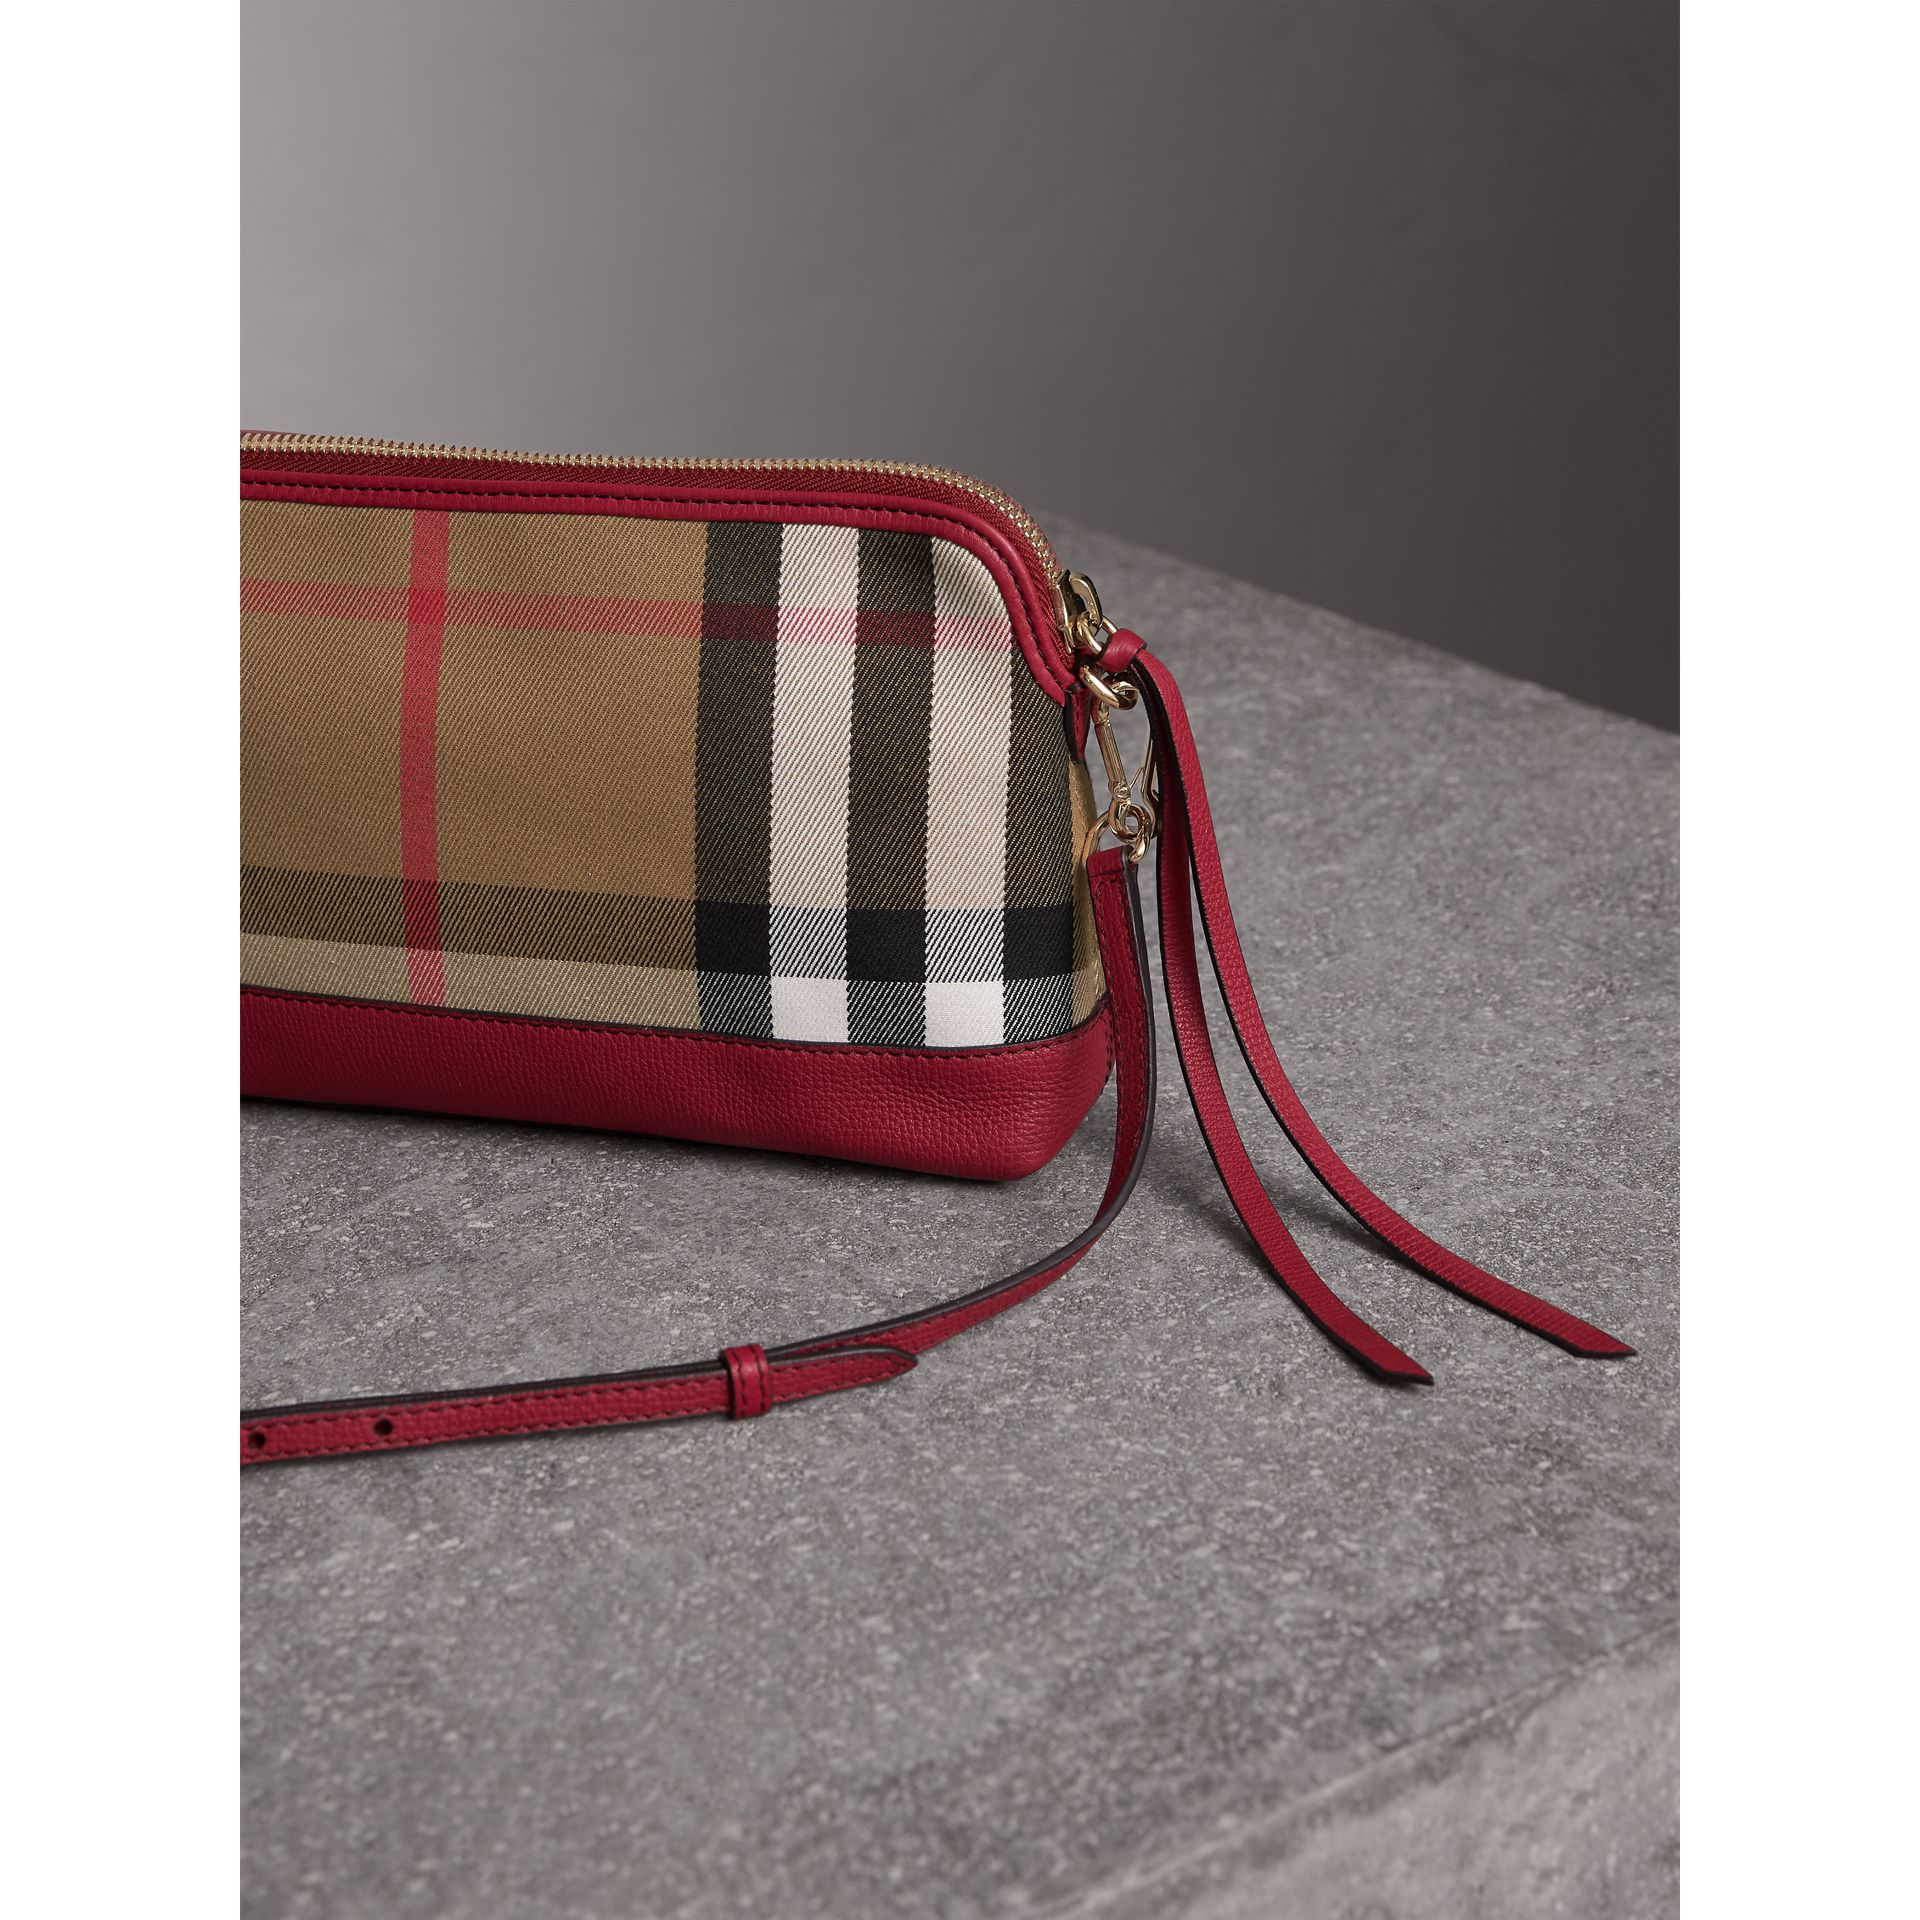 House Check and Leather Clutch Bag in Russet Red - Women | Burberry - gallery image 4